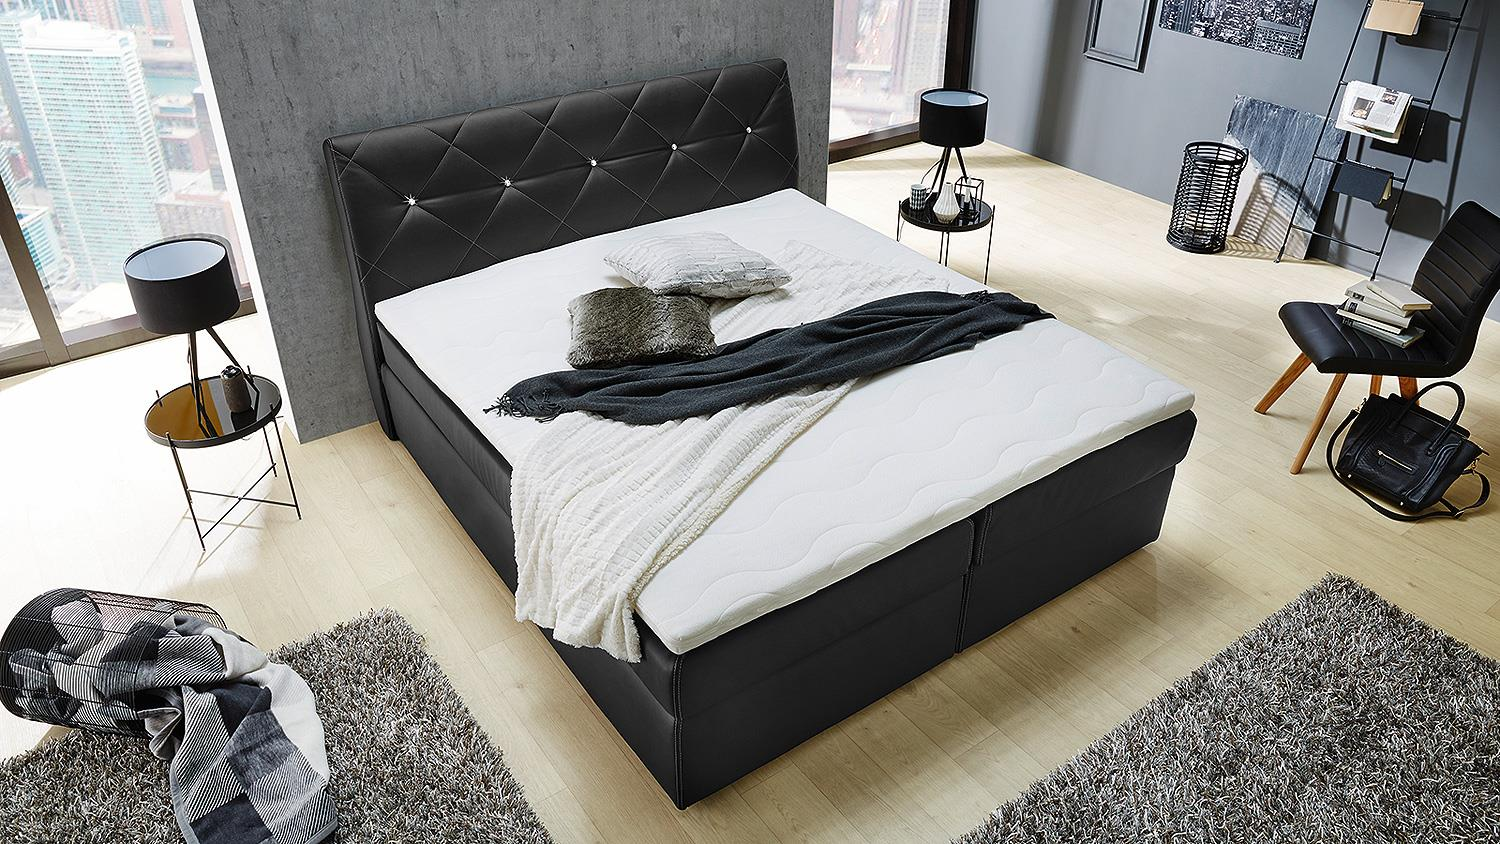 boxspringbett samantha bett f r schlafzimmer in schwarz mit topper 180. Black Bedroom Furniture Sets. Home Design Ideas